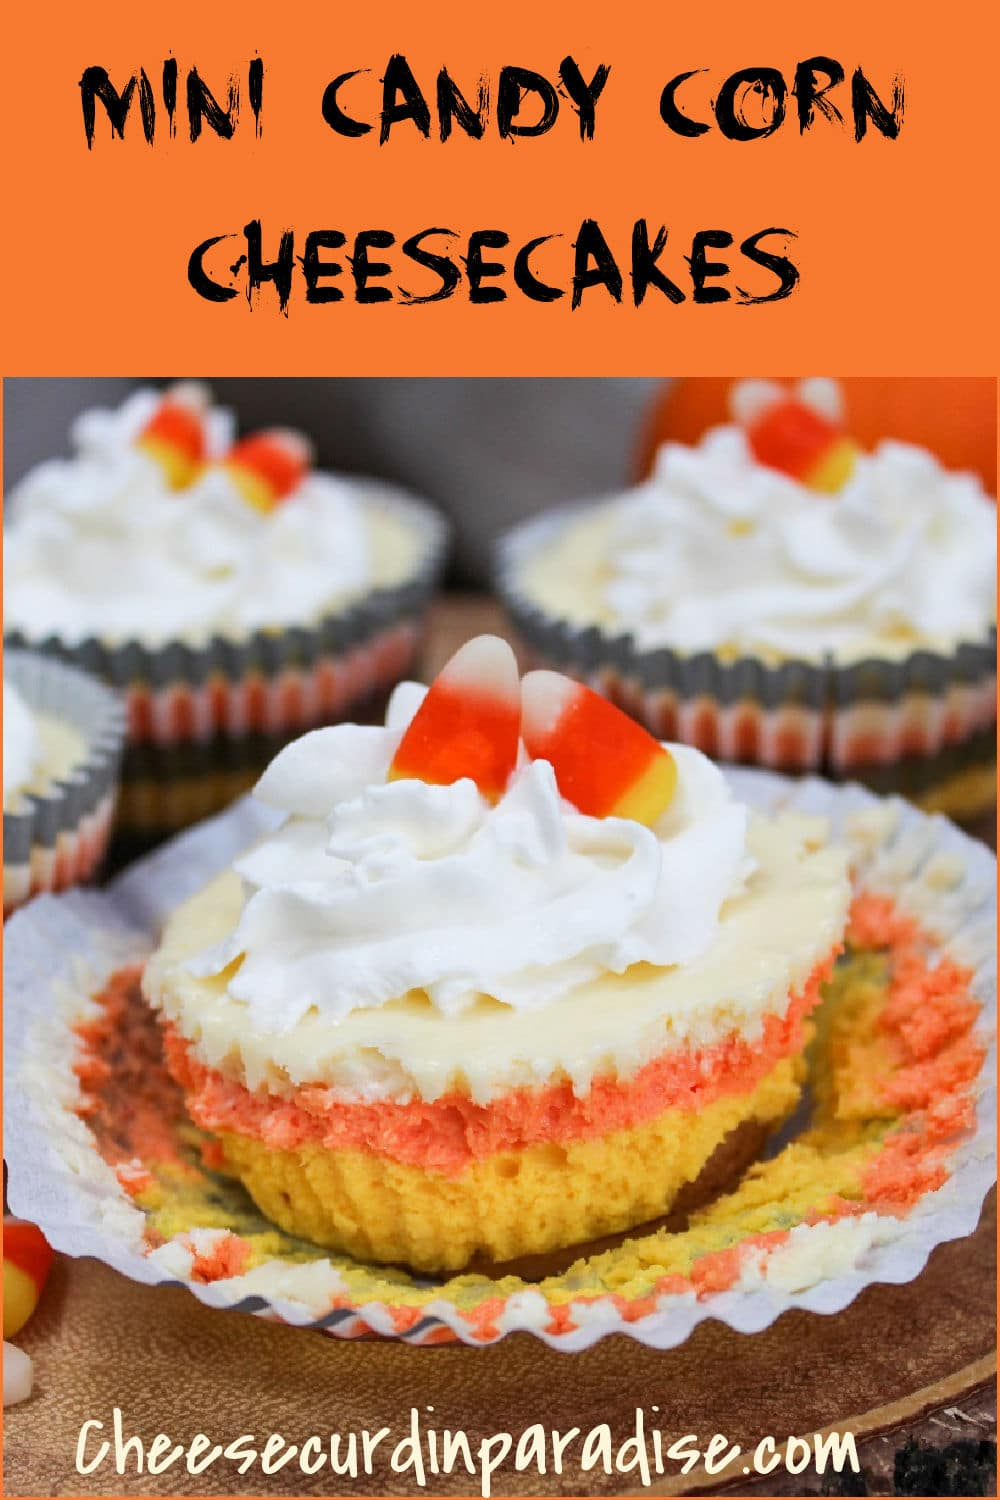 cheesecake with wrapper off and showing yellow orange and white colors